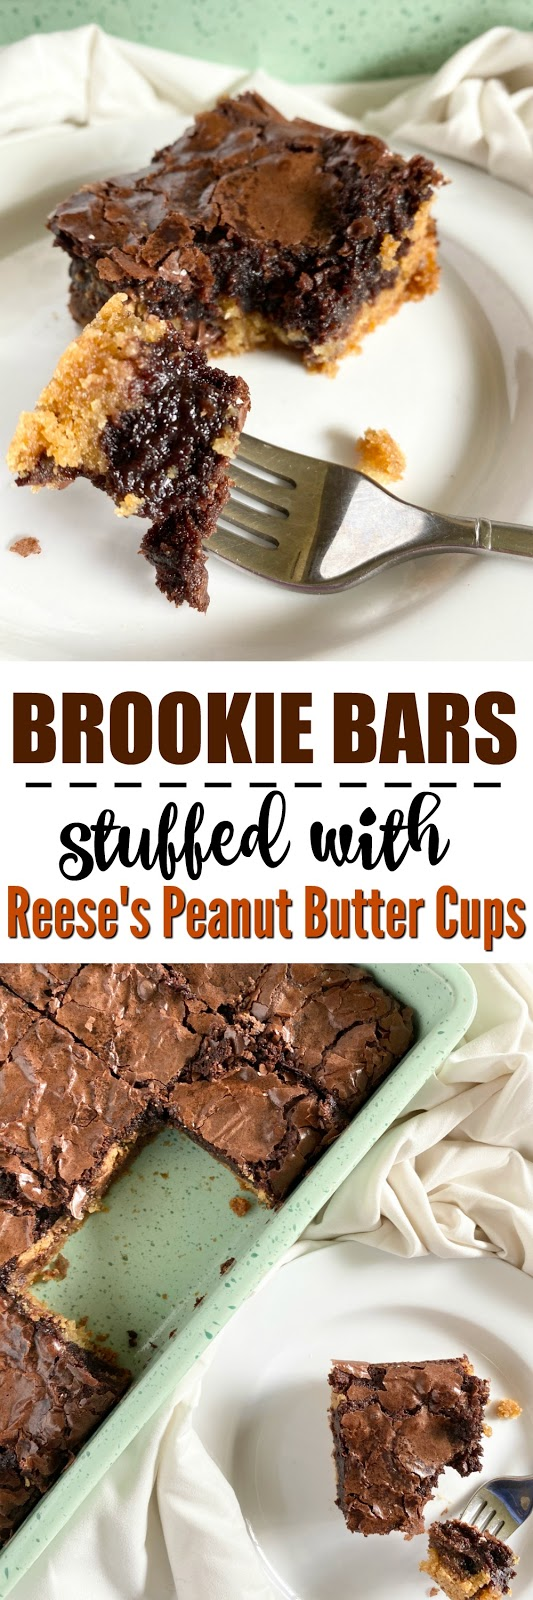 Reese's Peanut Butter Cup Stuffed Brookie Bars